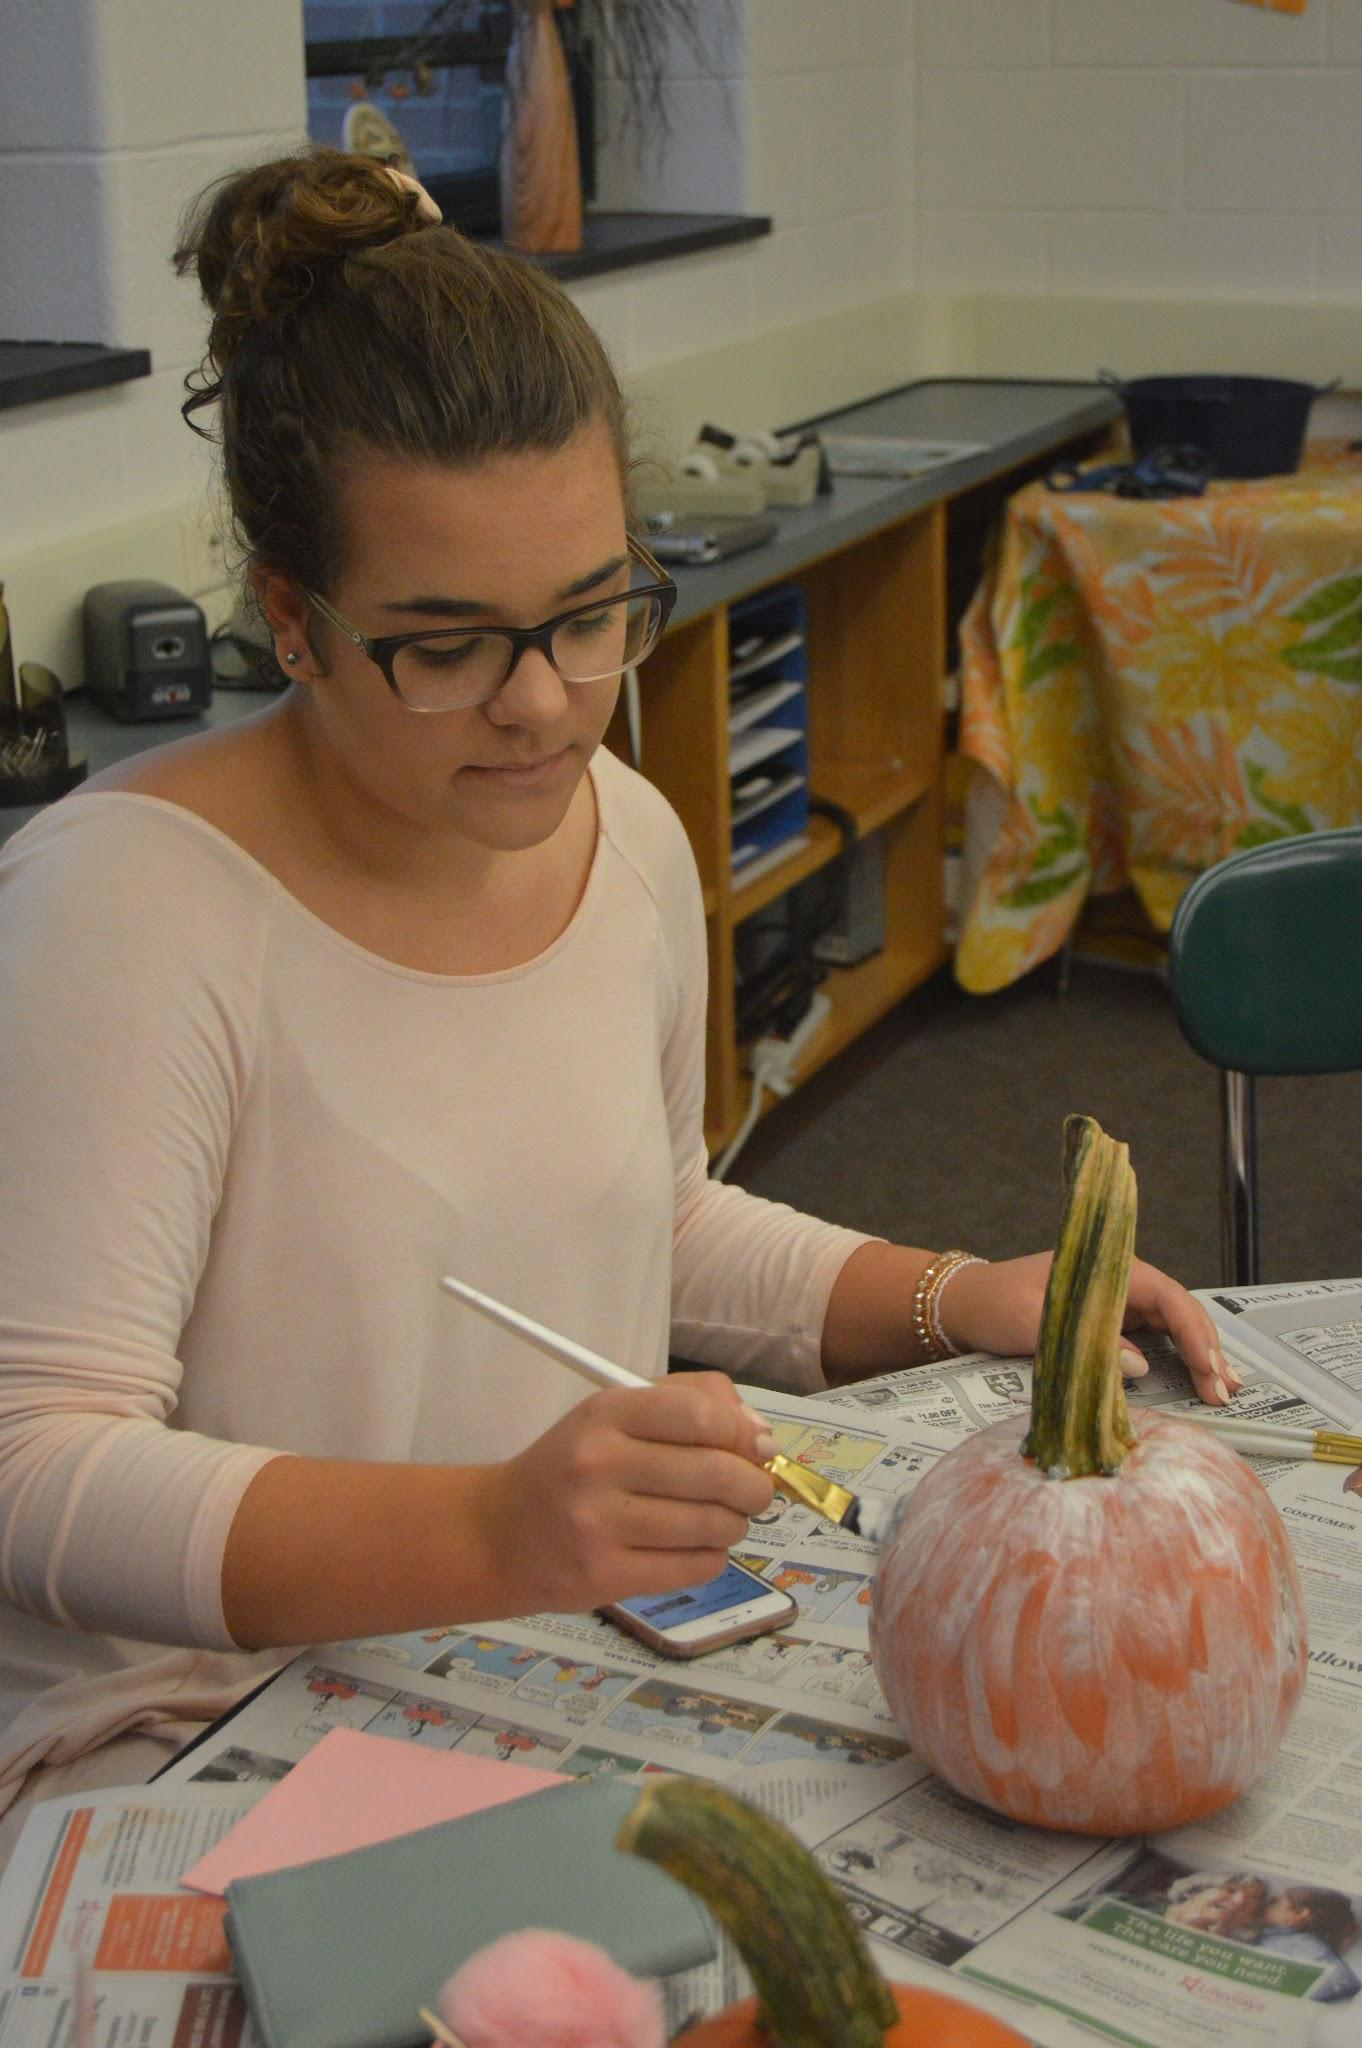 Rachel Haines paints pumpkins at Hershey High School on October 7th, 2016.  Community day brought students together through different sessions they could sign up for. (Broadcaster/ Elaina Joyner)